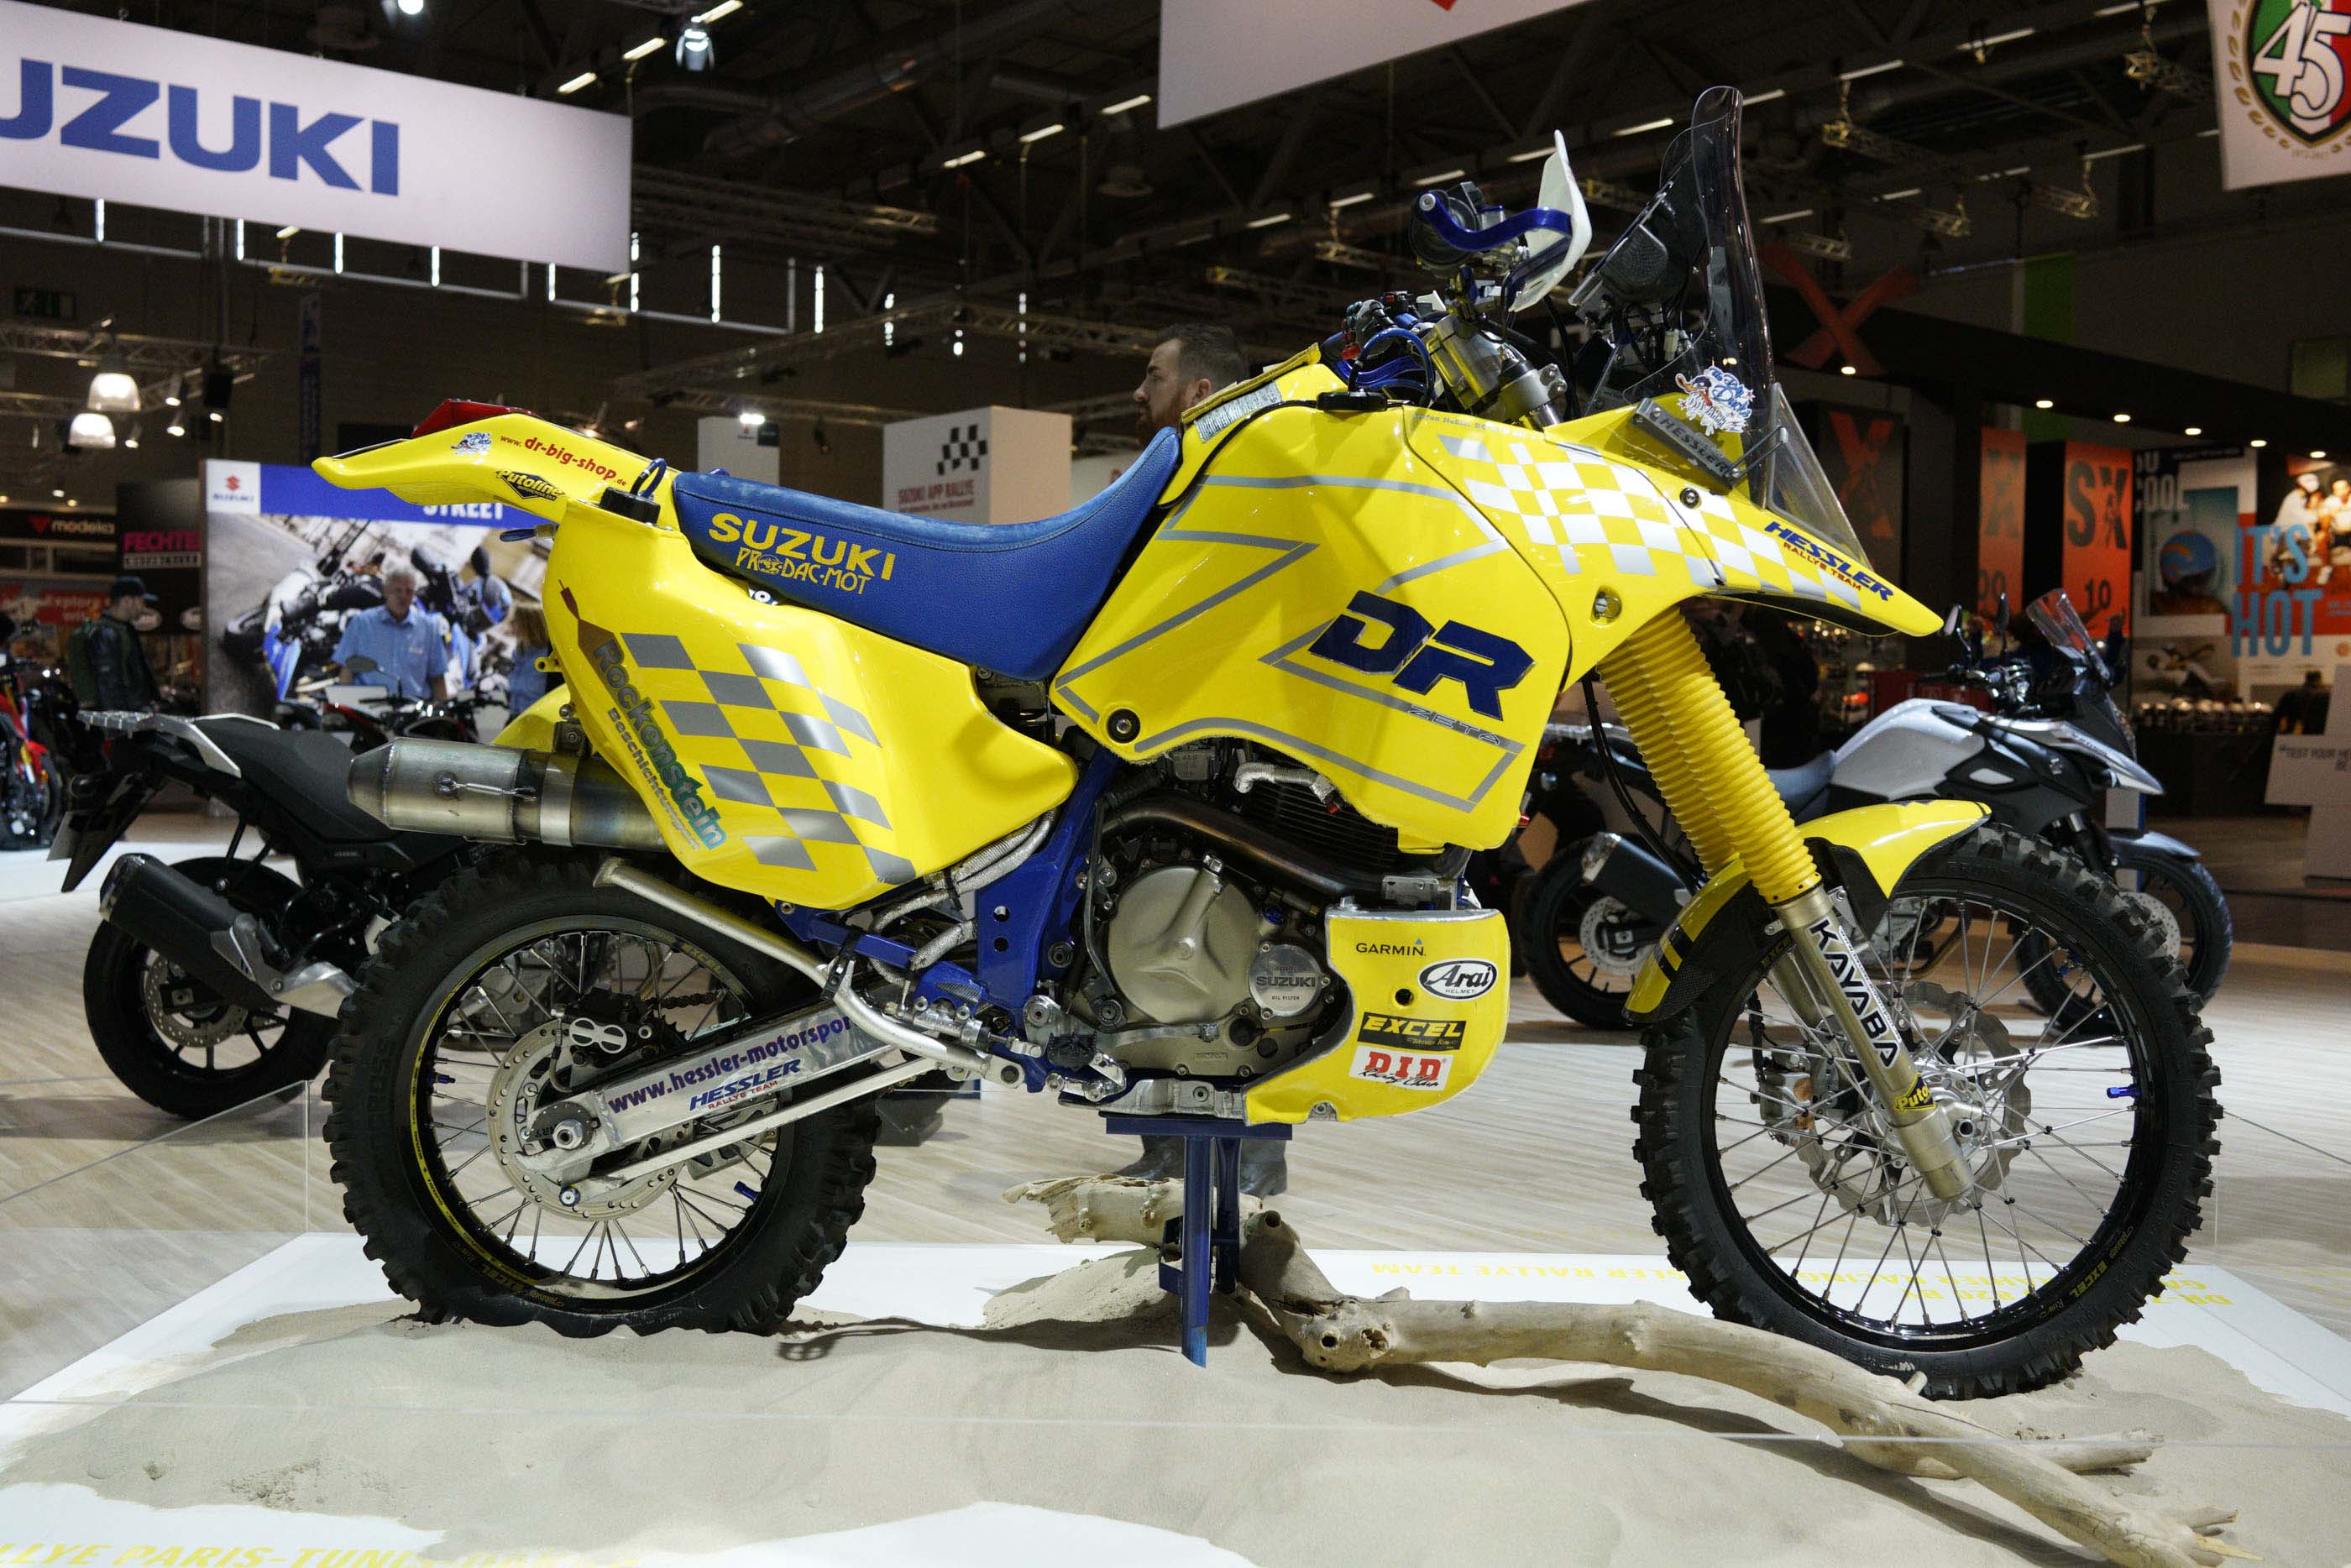 Honda Xr650L For Sale >> Checkout This Historic Suzuki DR-Z Dakar Rally Race Bike